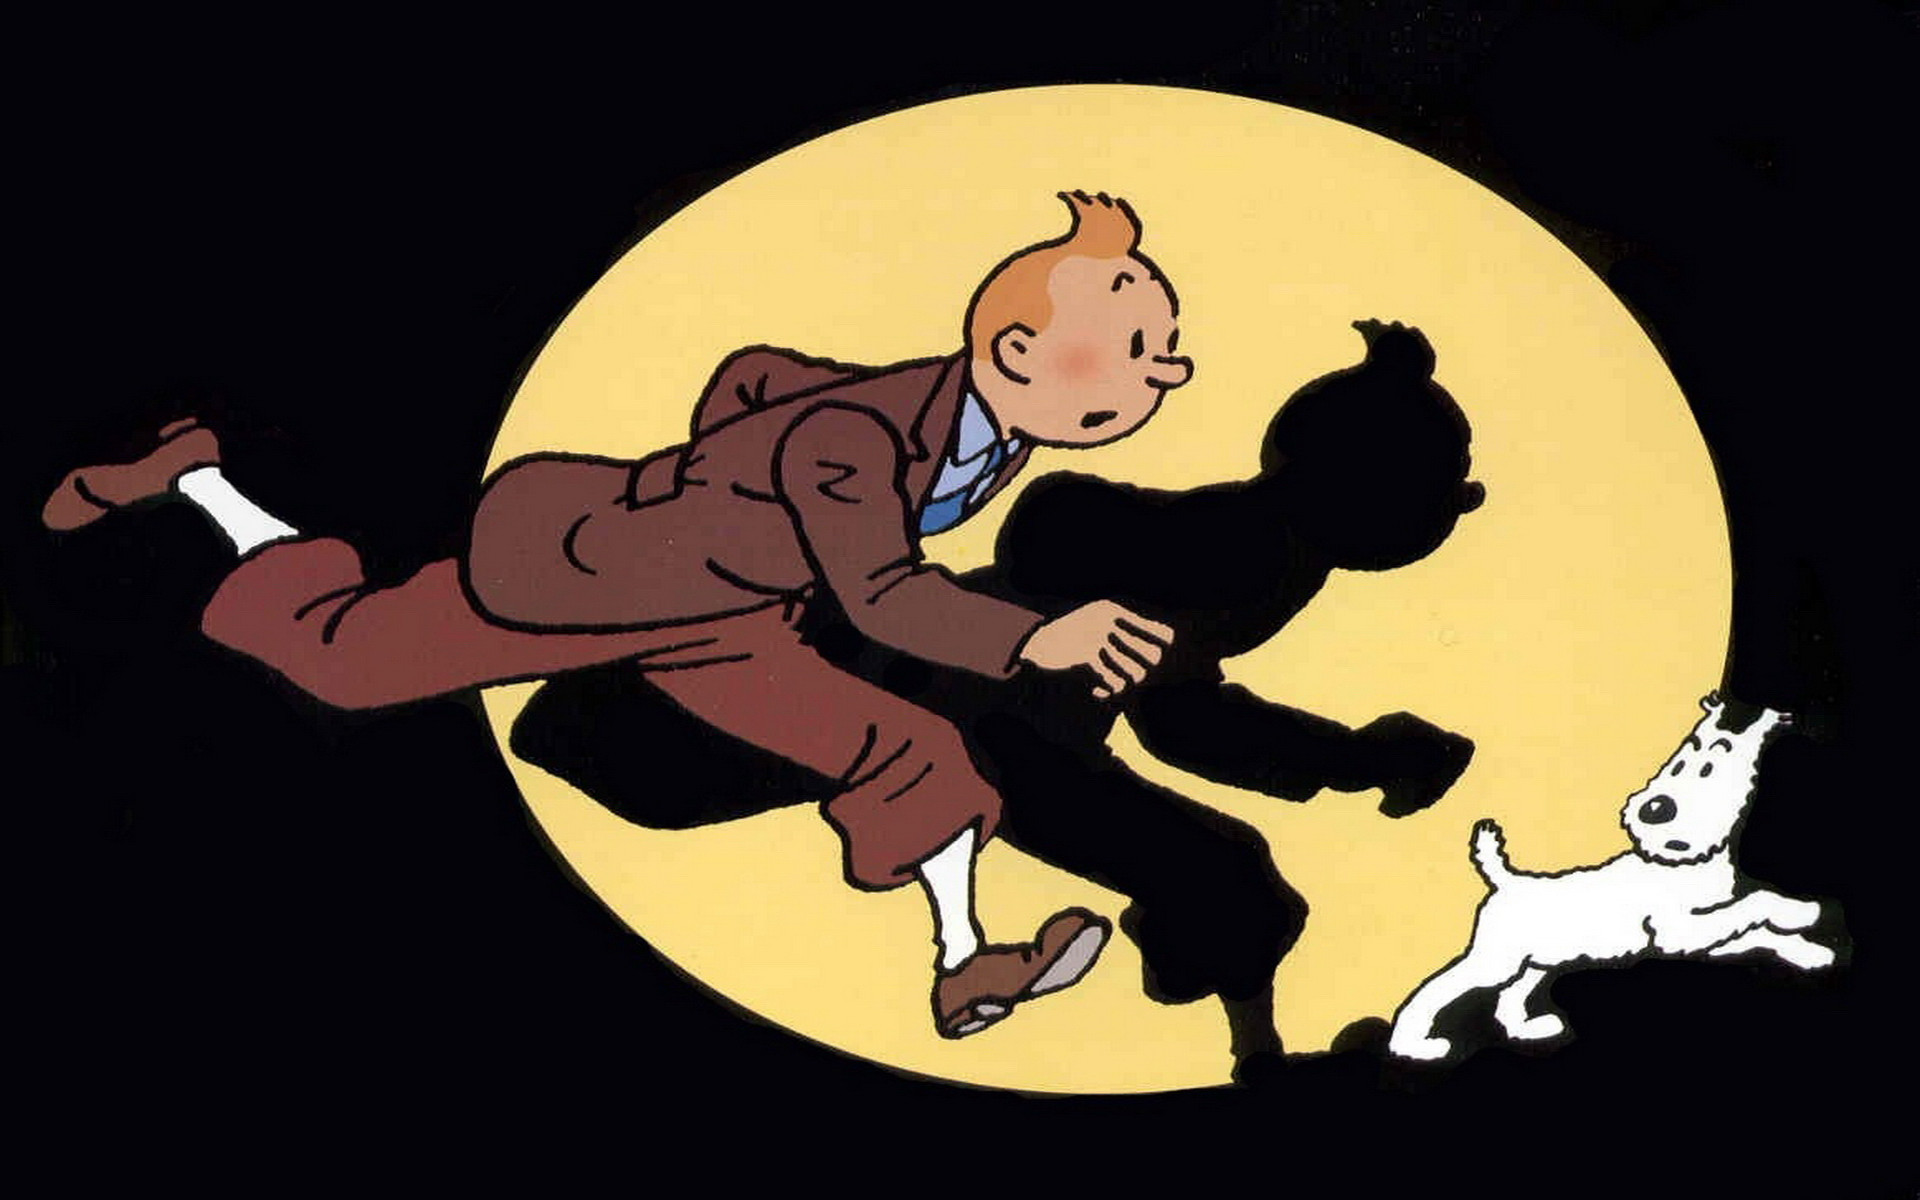 tintin and snowy wallpaper - photo #11